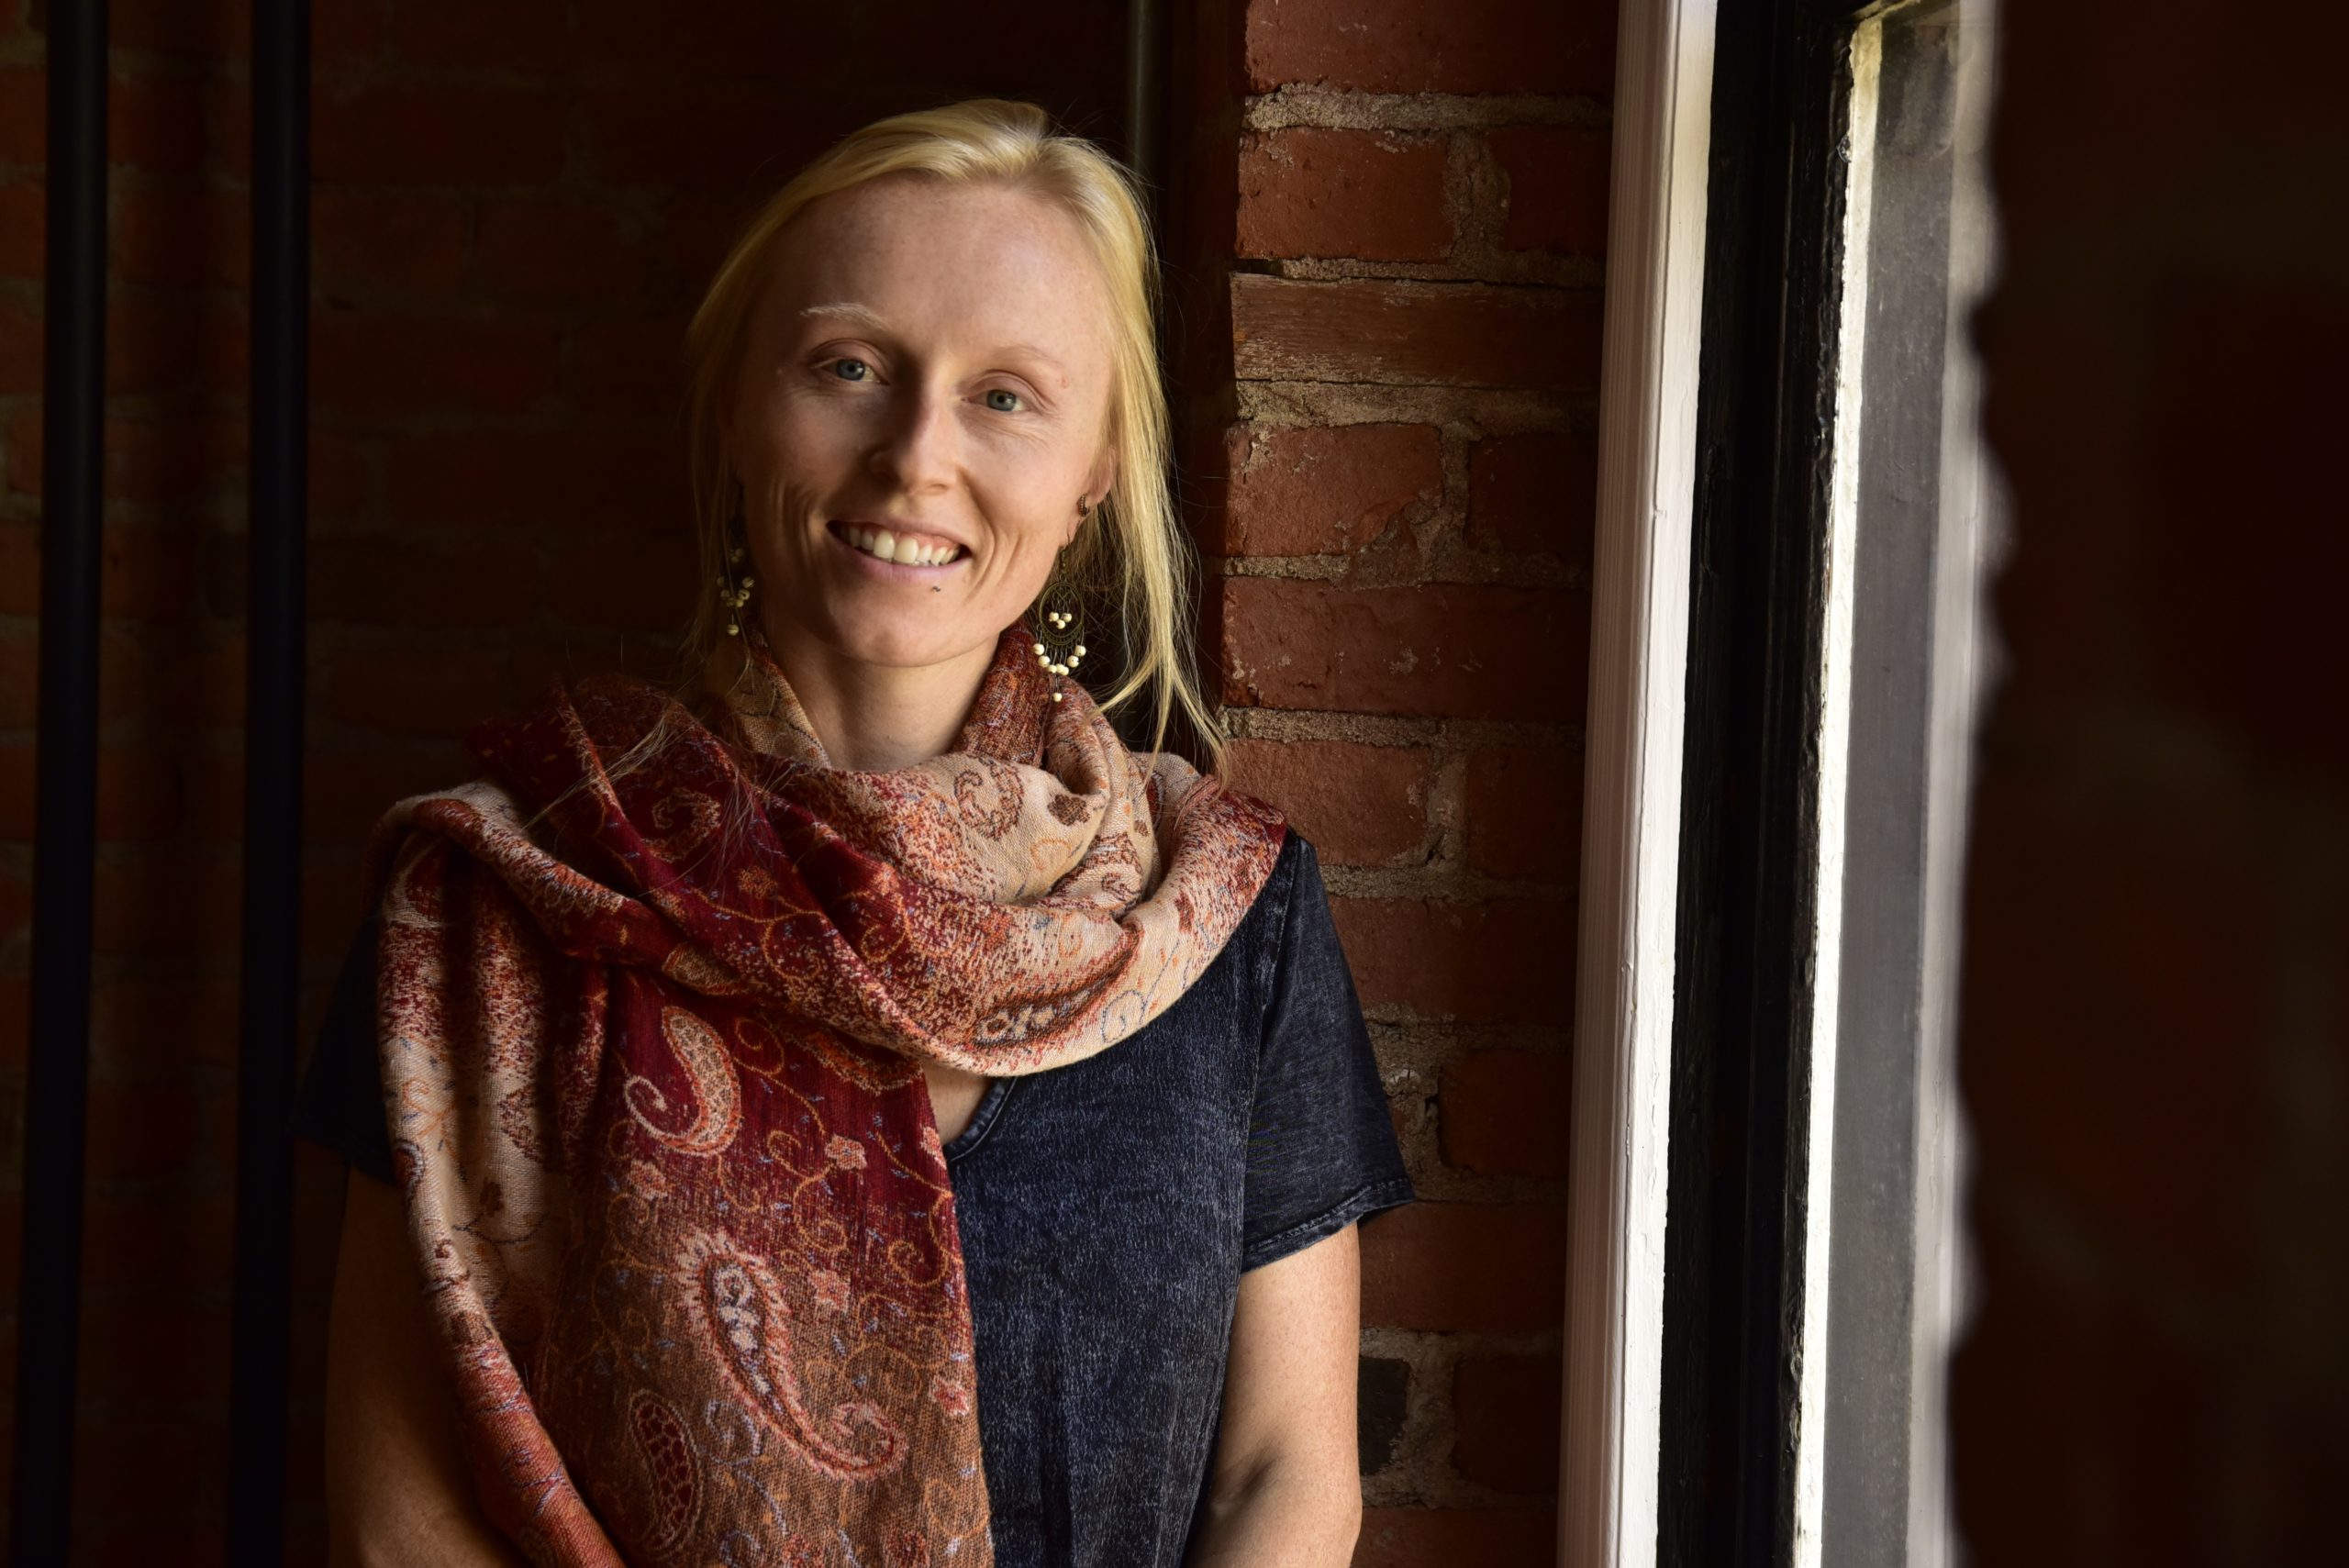 Alison Stadnyk, Registered Chinese Medicine Practitioner, Acupuncturist, Chinese Herbalist, Diploma Doctor of Traditional Chinese Medicine